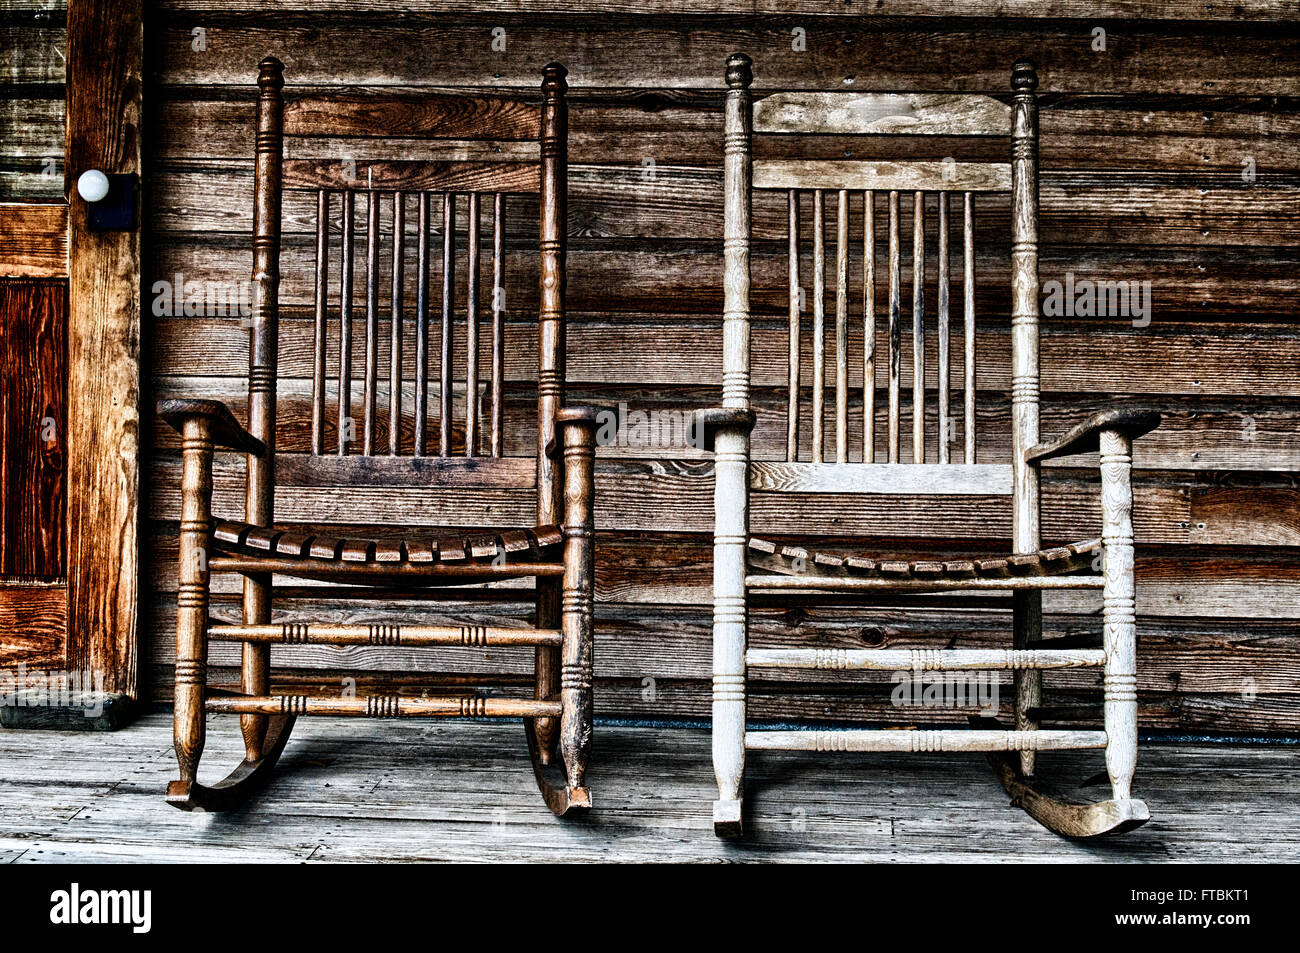 Two old wooden rocking chairs on front porch part of door and the houseu0027s wooden shingles can be seen. Rustic koreshan state park estero florida & Two old wooden rocking chairs on front porch part of door and the ...